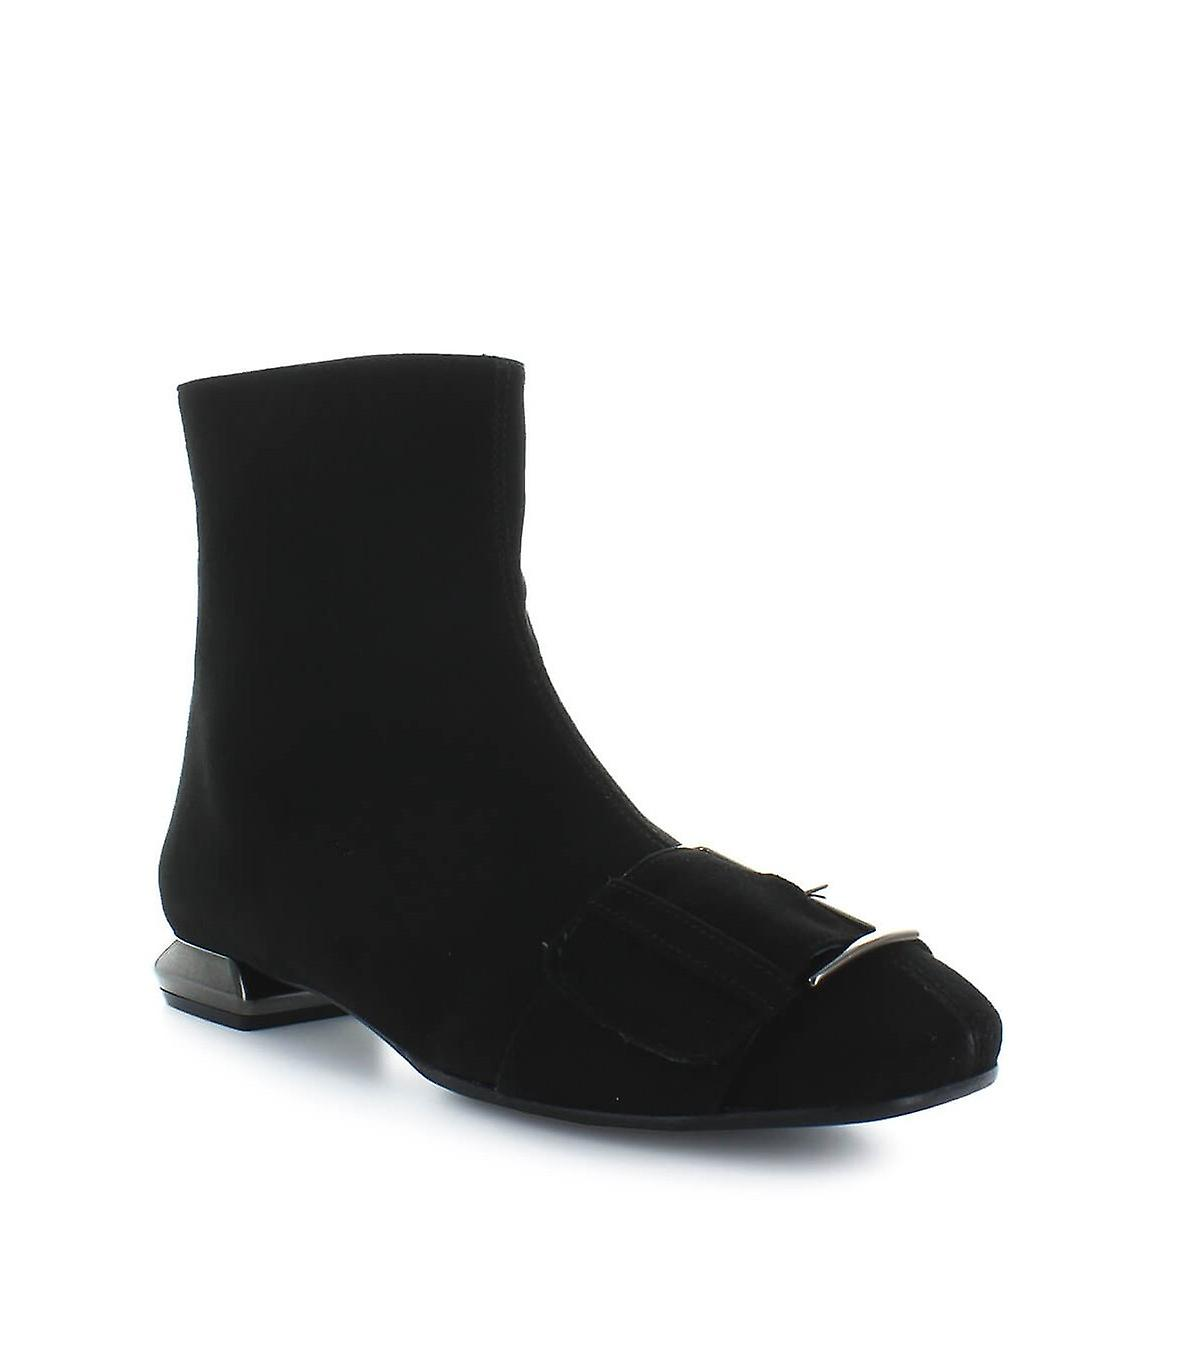 NICOLE BONNET BLACK SUEDE ANKLE BOOTS WITH BUCKLE